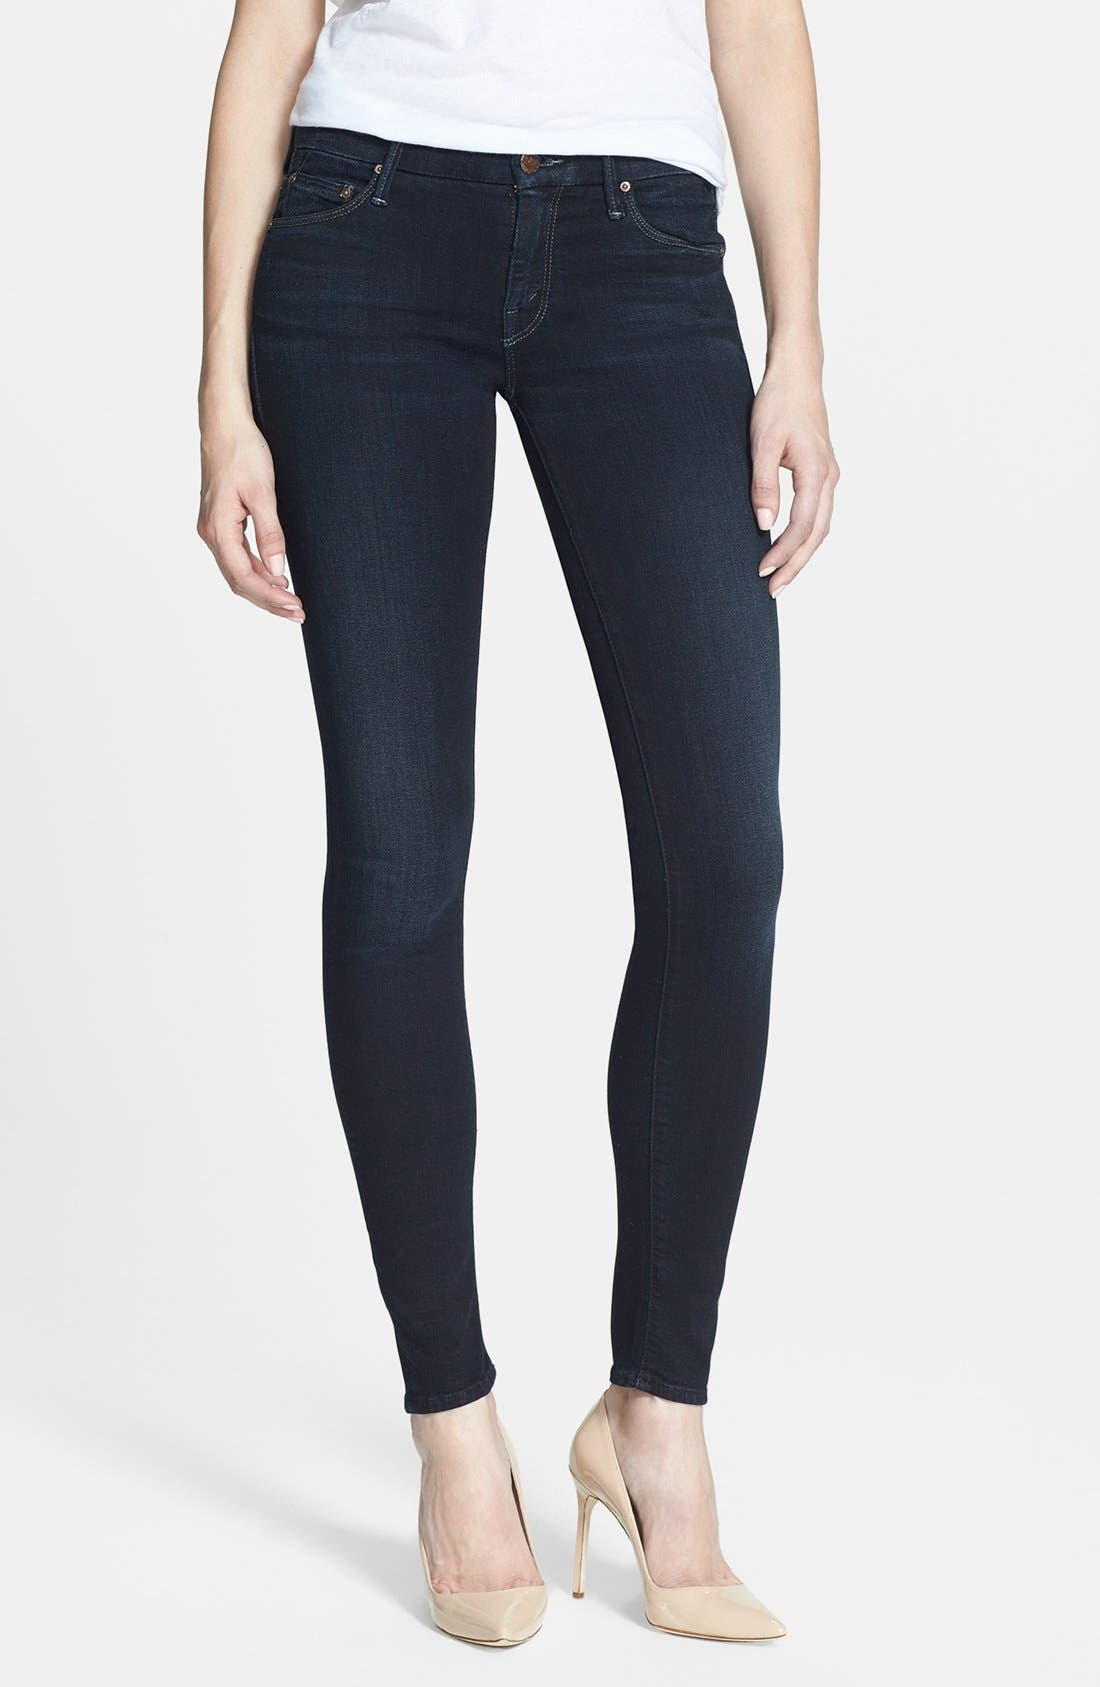 Alternate Image 1 Selected - MOTHER 'The Looker' Stretch Skinny Jeans (Bittersweet)